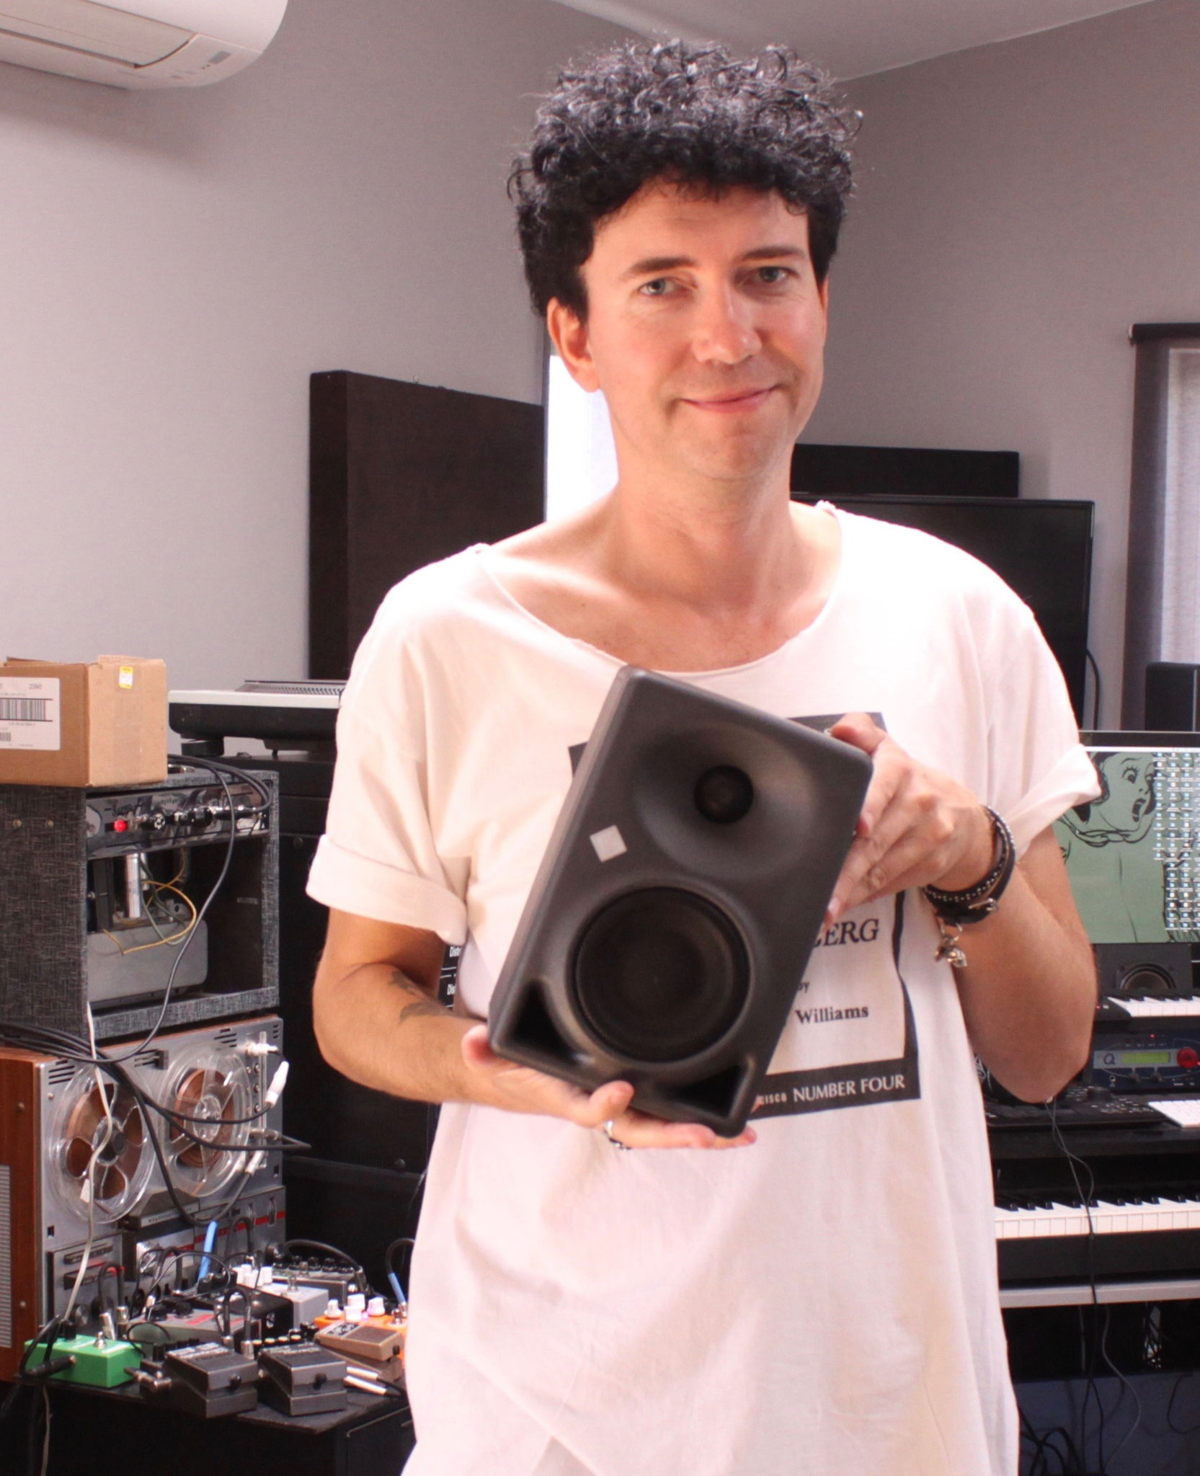 Sune Rose Wagner, film and TV composer and member of the Raveonettes, with one of his Neumann KH 120 monitors.